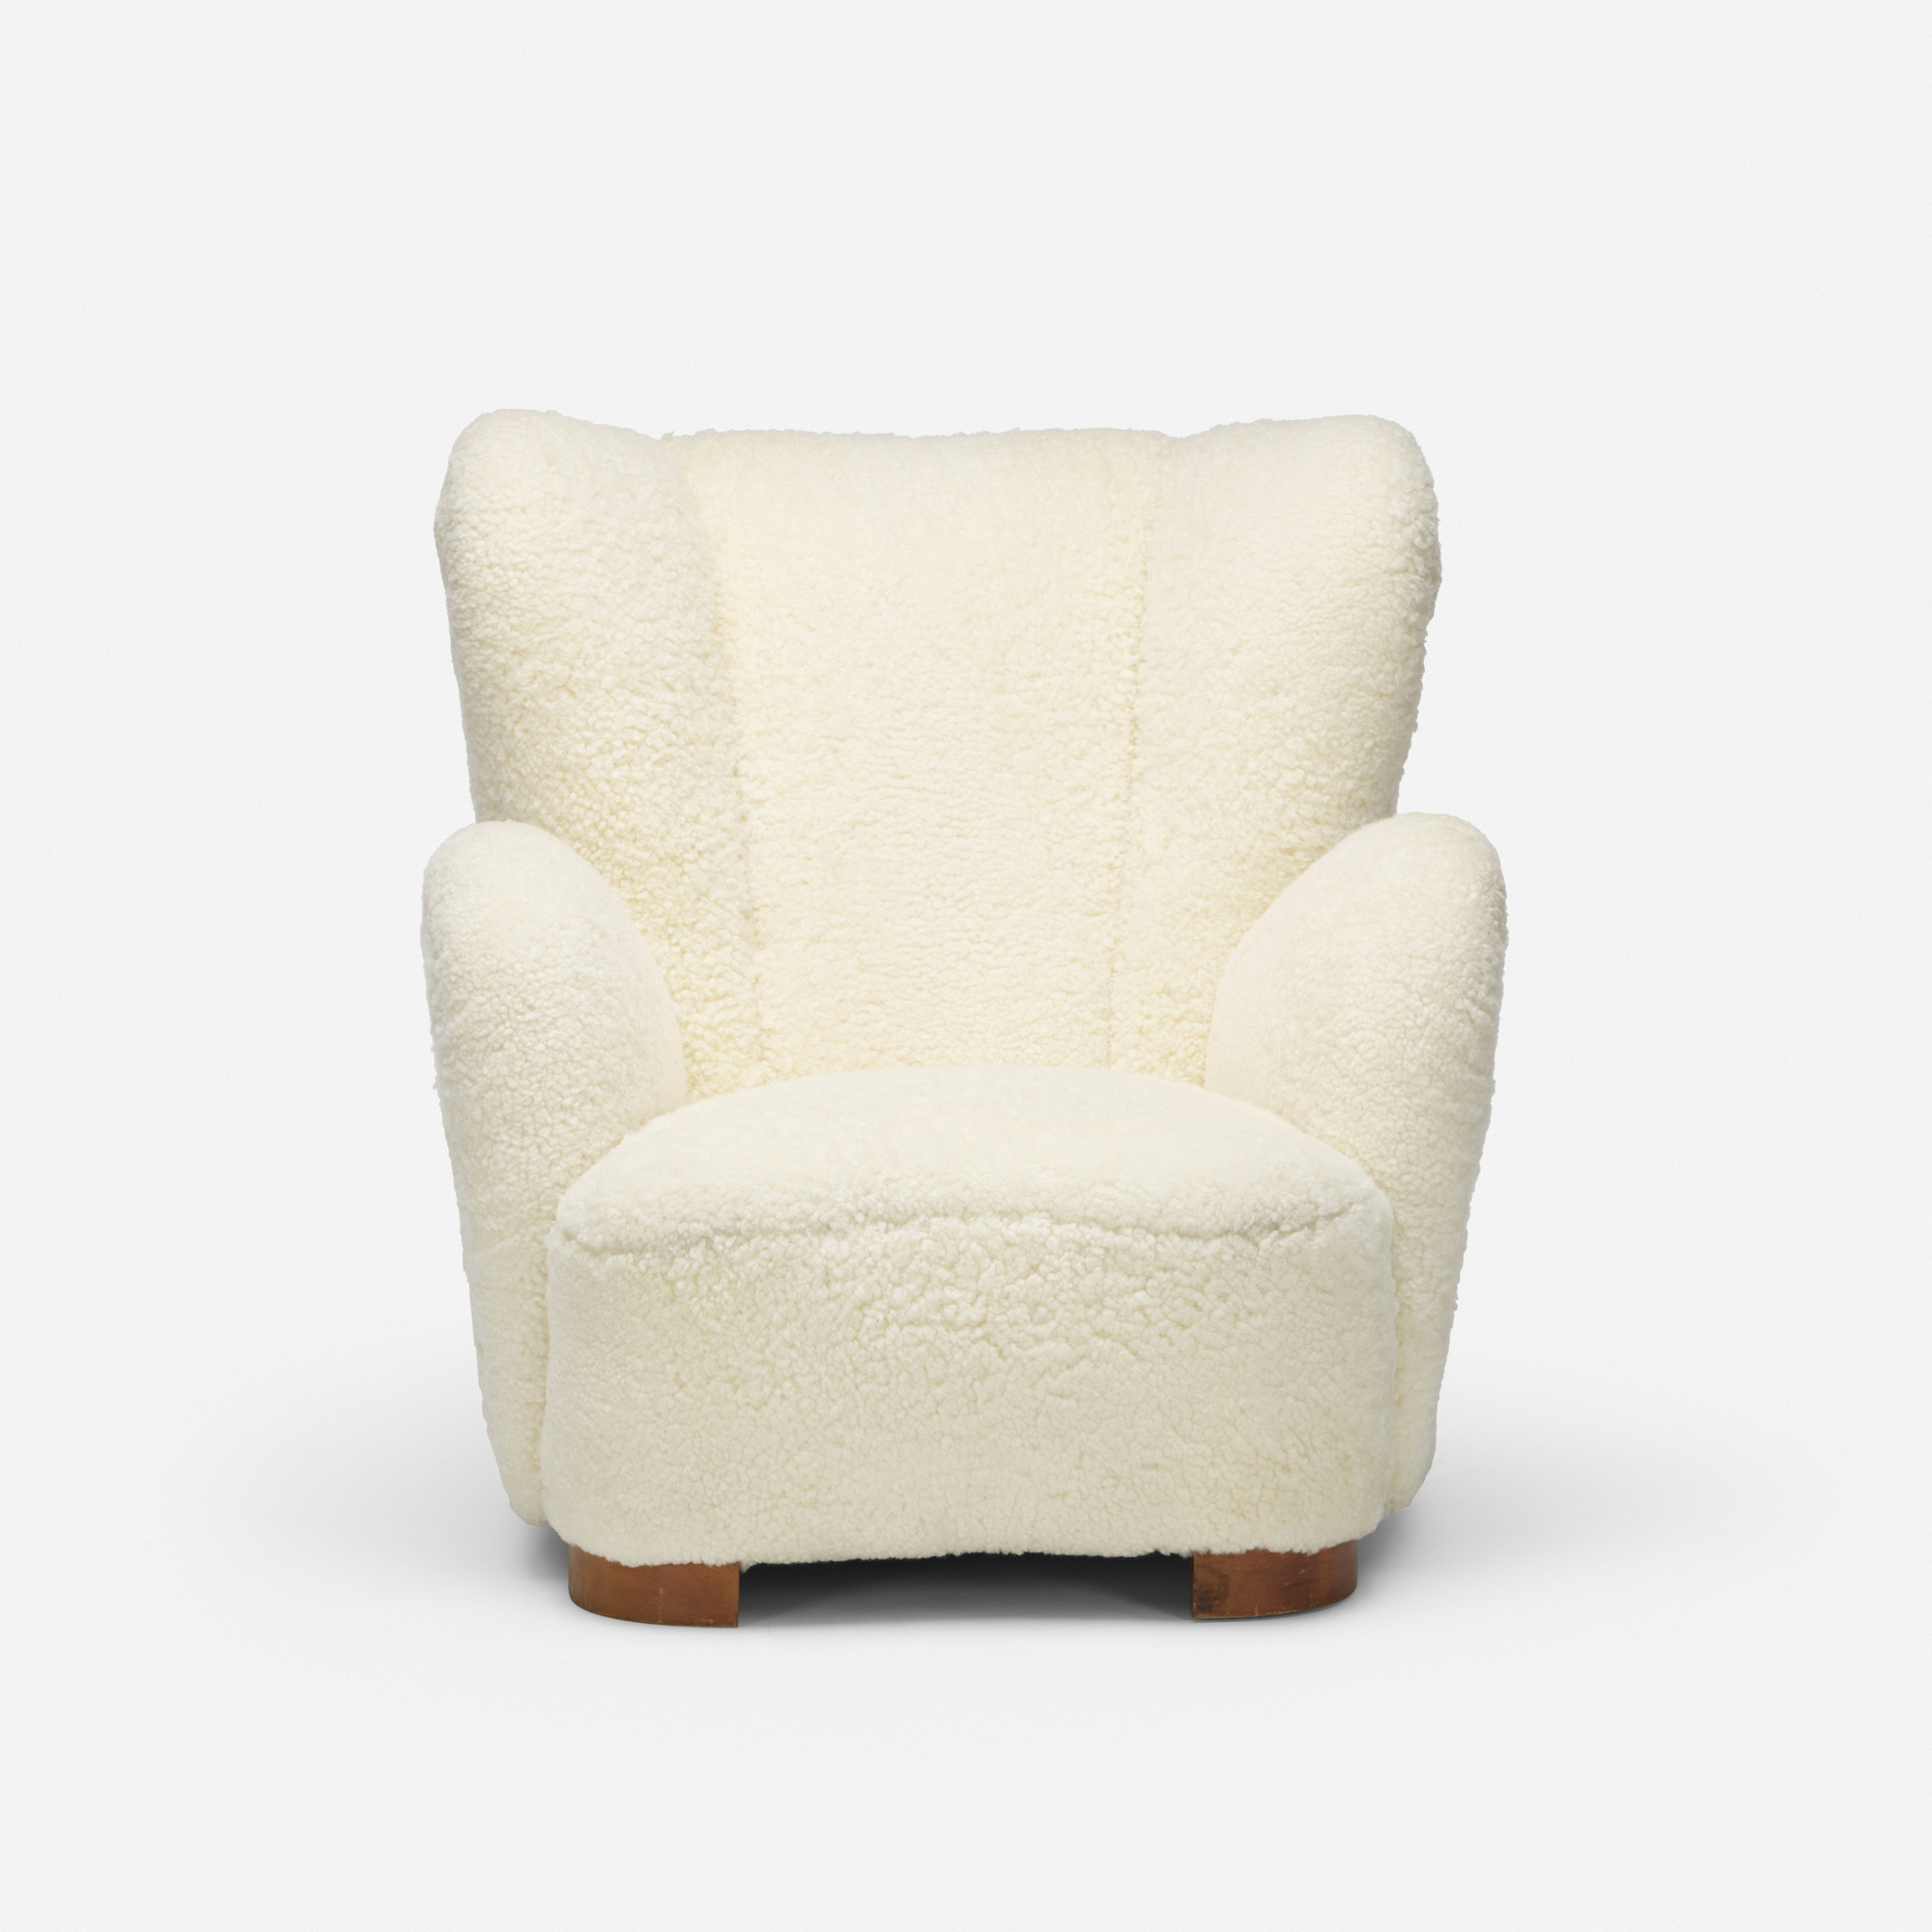 181: Flemming Lassen, attribution / lounge chair (2 of 3)